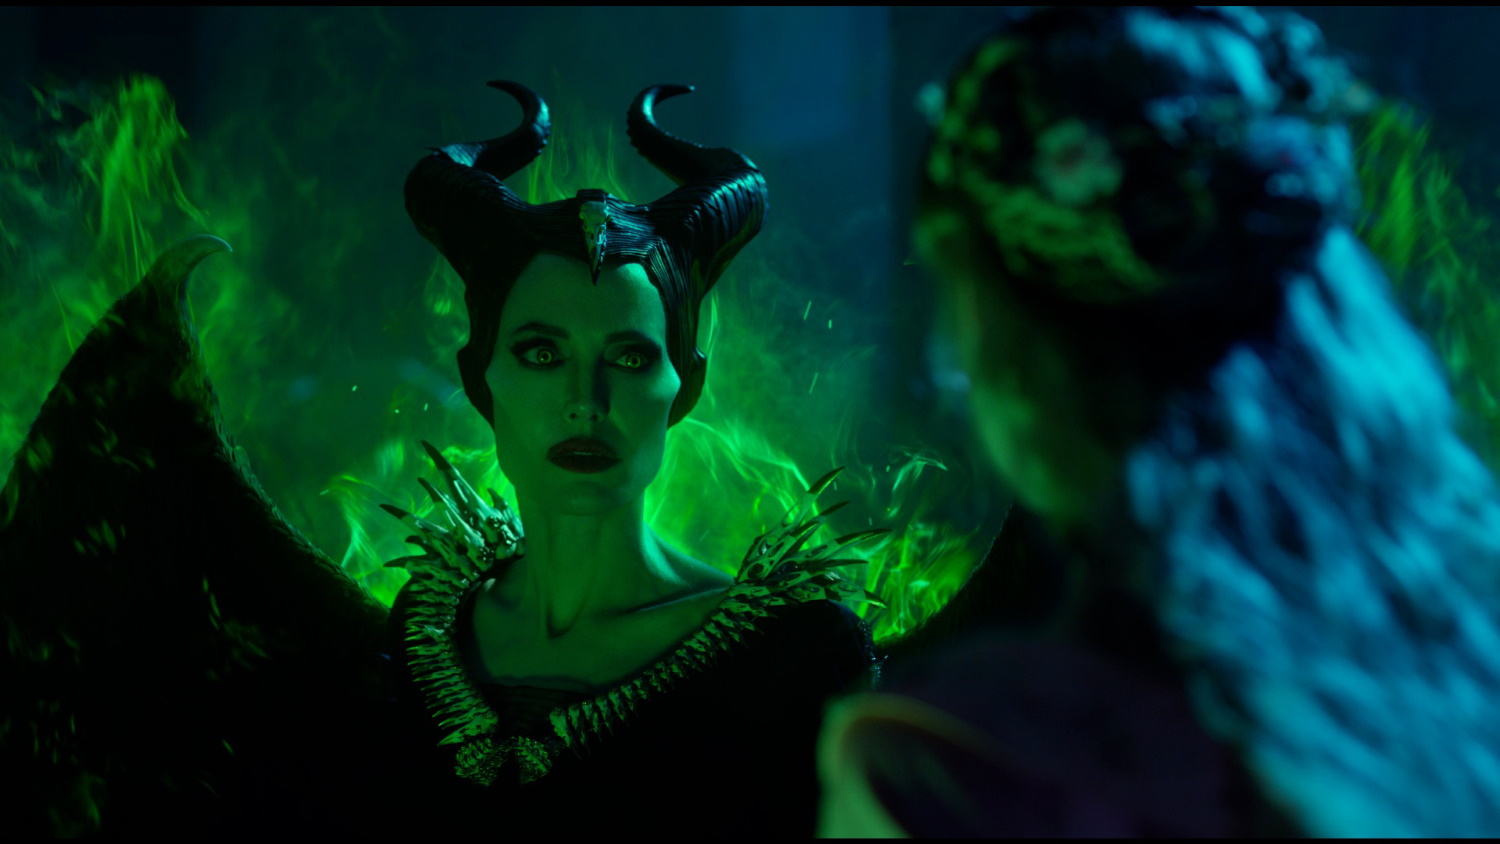 Maleficent: Mistress of Evil (2019) - Whats After The Credits? | The Definitive After Credits Film Catalog Service